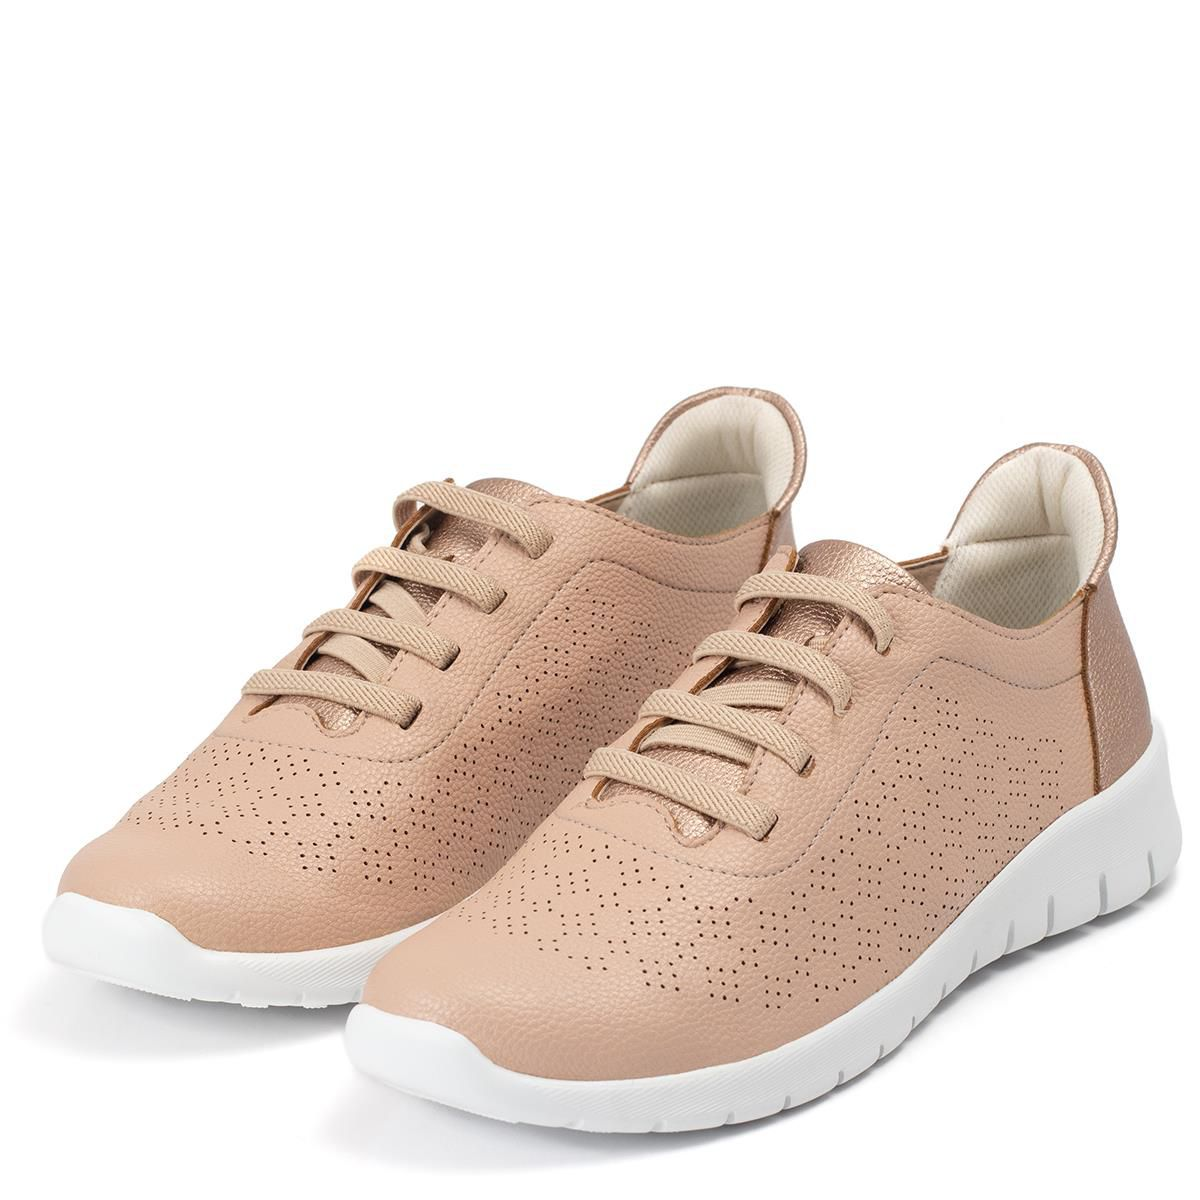 Tenis Piccadilly Lasercut - 970030